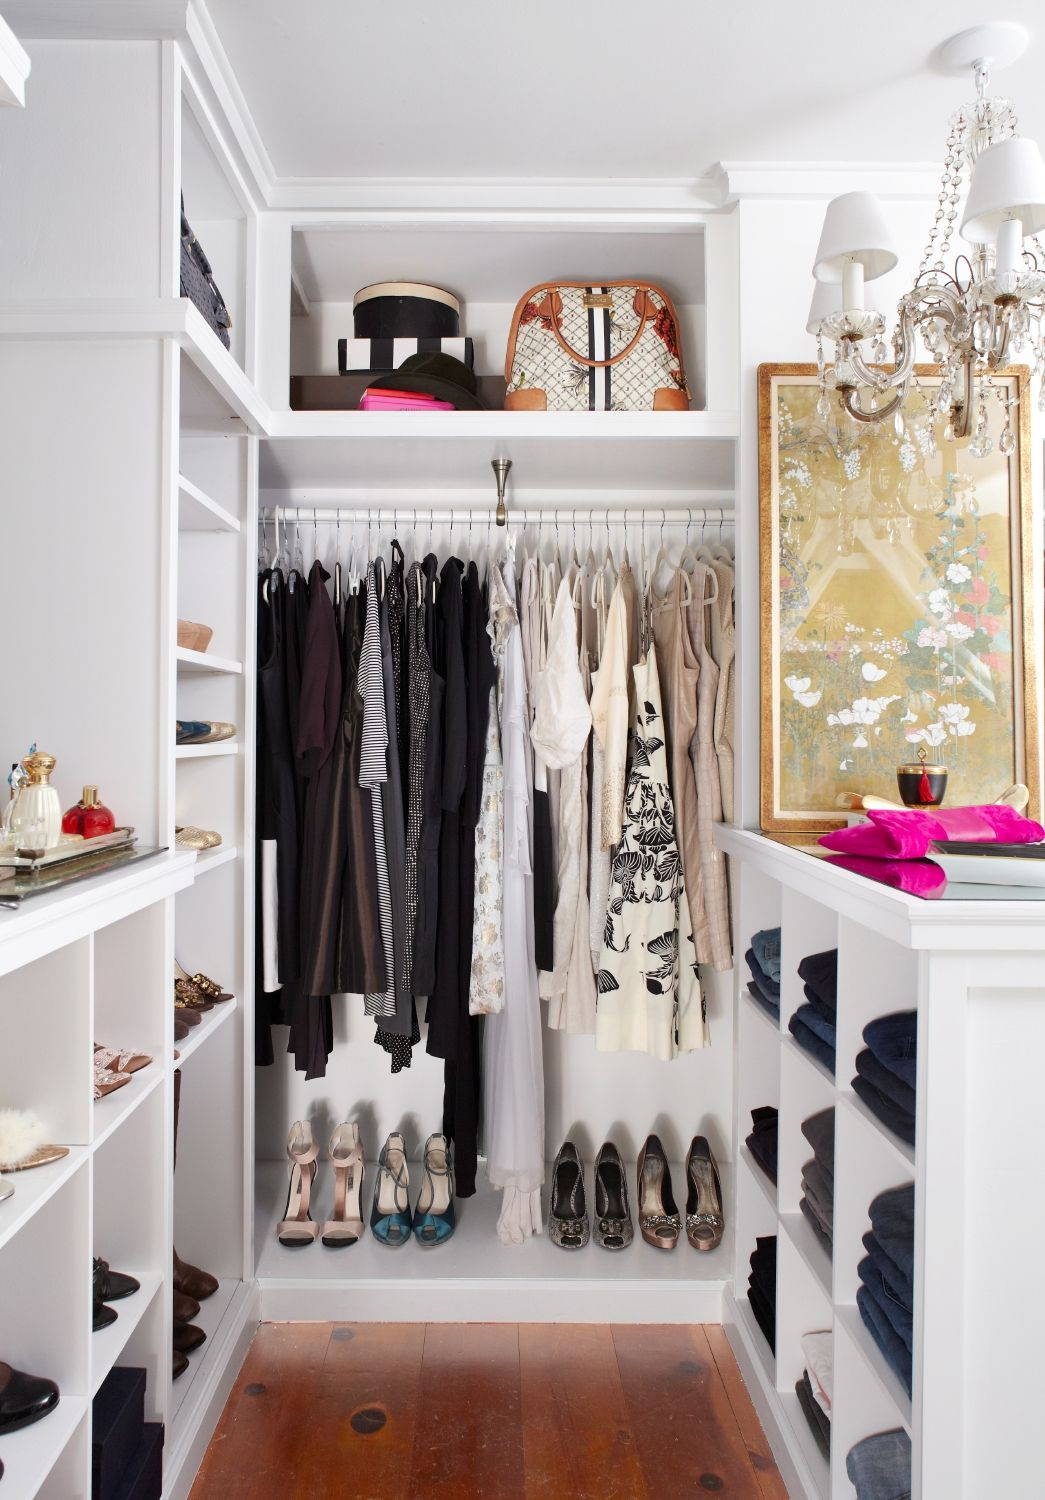 Walk In Closet Design Ideas decoration nice modern small walk in closet design ideas with fetching wooden shelves design and Find This Pin And More On Interior Ideas Small Walk In Closet Designs